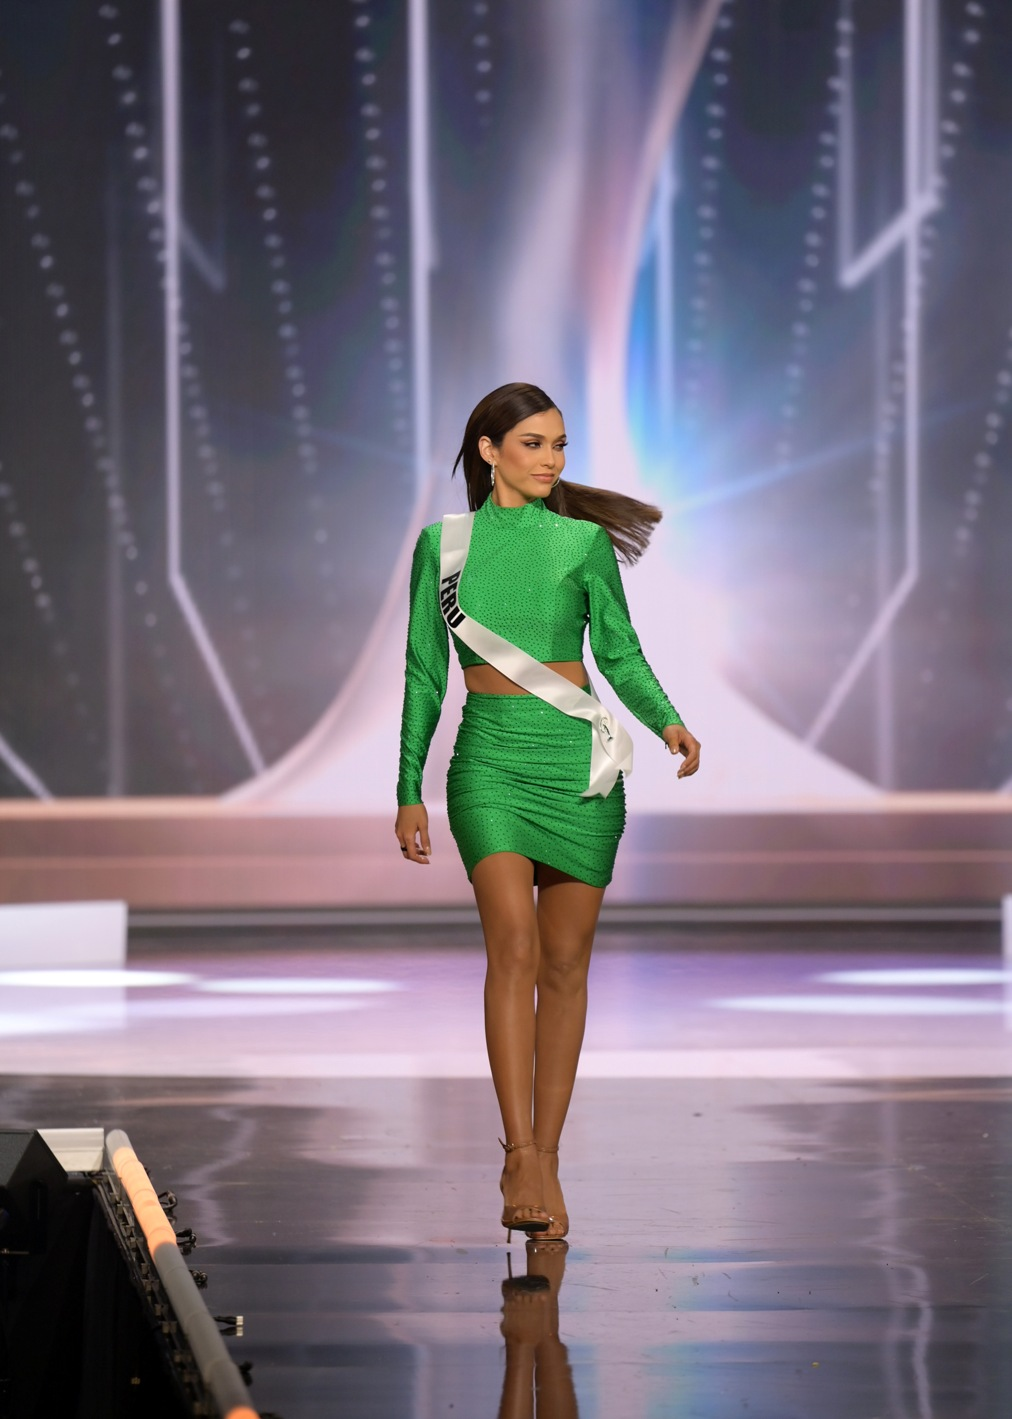 Janick Maceta Del Castillo, Miss Universe Peru 2020 on stage in fashion by Sherri Hill during the opening of the MISS UNIVERSE® Preliminary Competition at the Seminole Hard Rock Hotel & Casino in Hollywood, Florida on May 14, 2021. Tune in to the live telecast on FYI and Telemundo on Sunday, May 16 at 8:00 PM ET to see who will become the next Miss Universe.